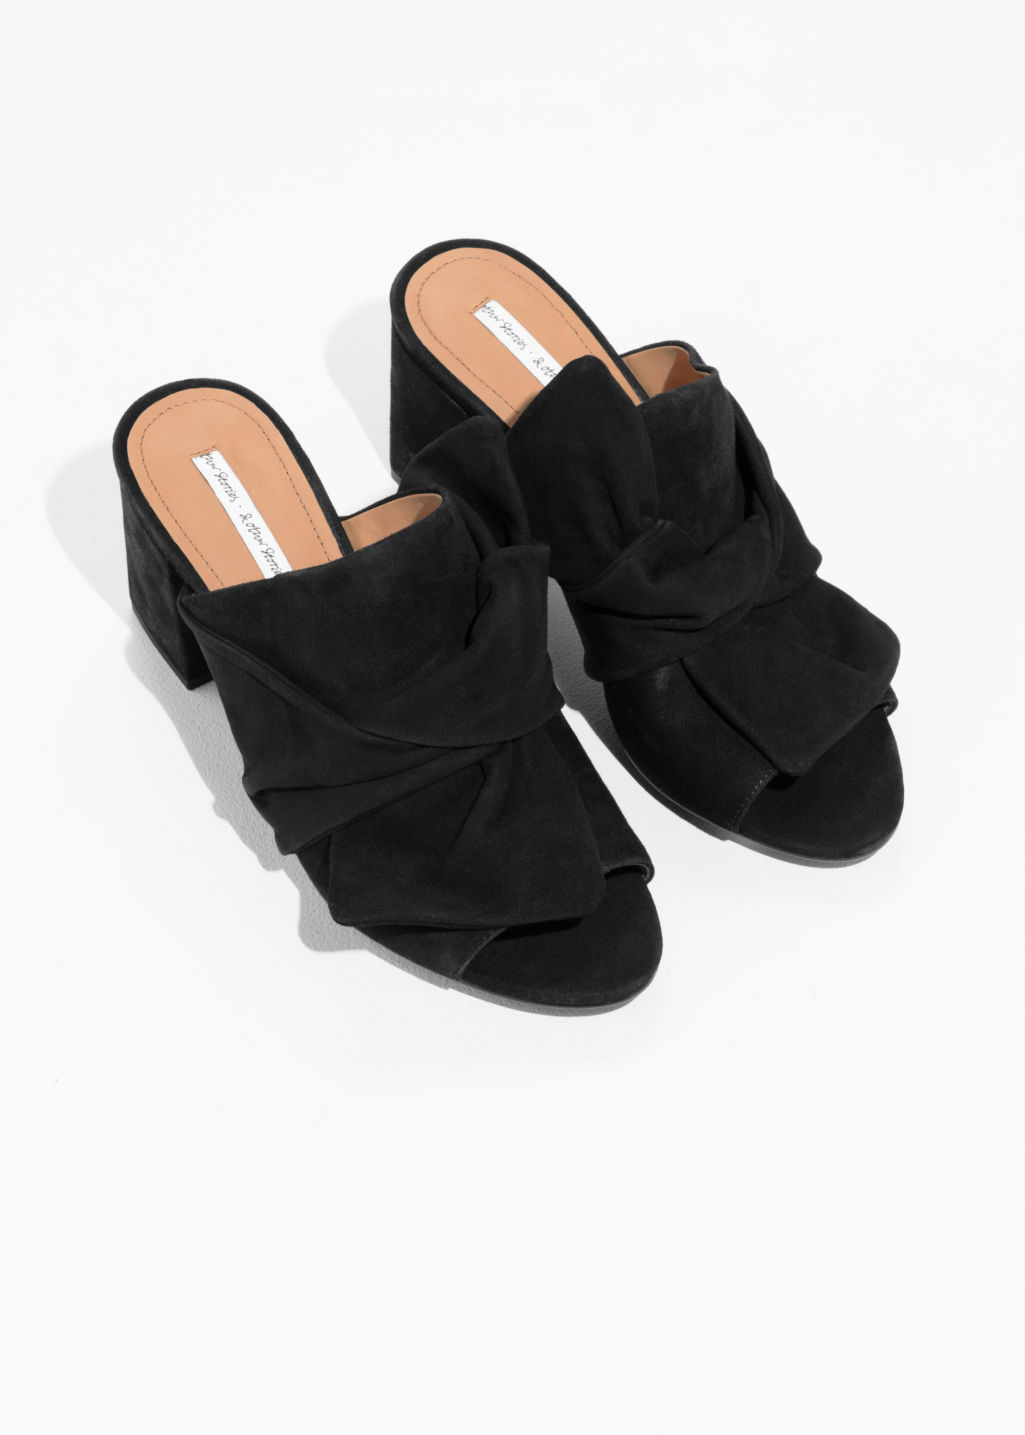 & OTHER STORIES Patent Leather Loafer Mules - Black Compra en línea XGgqq